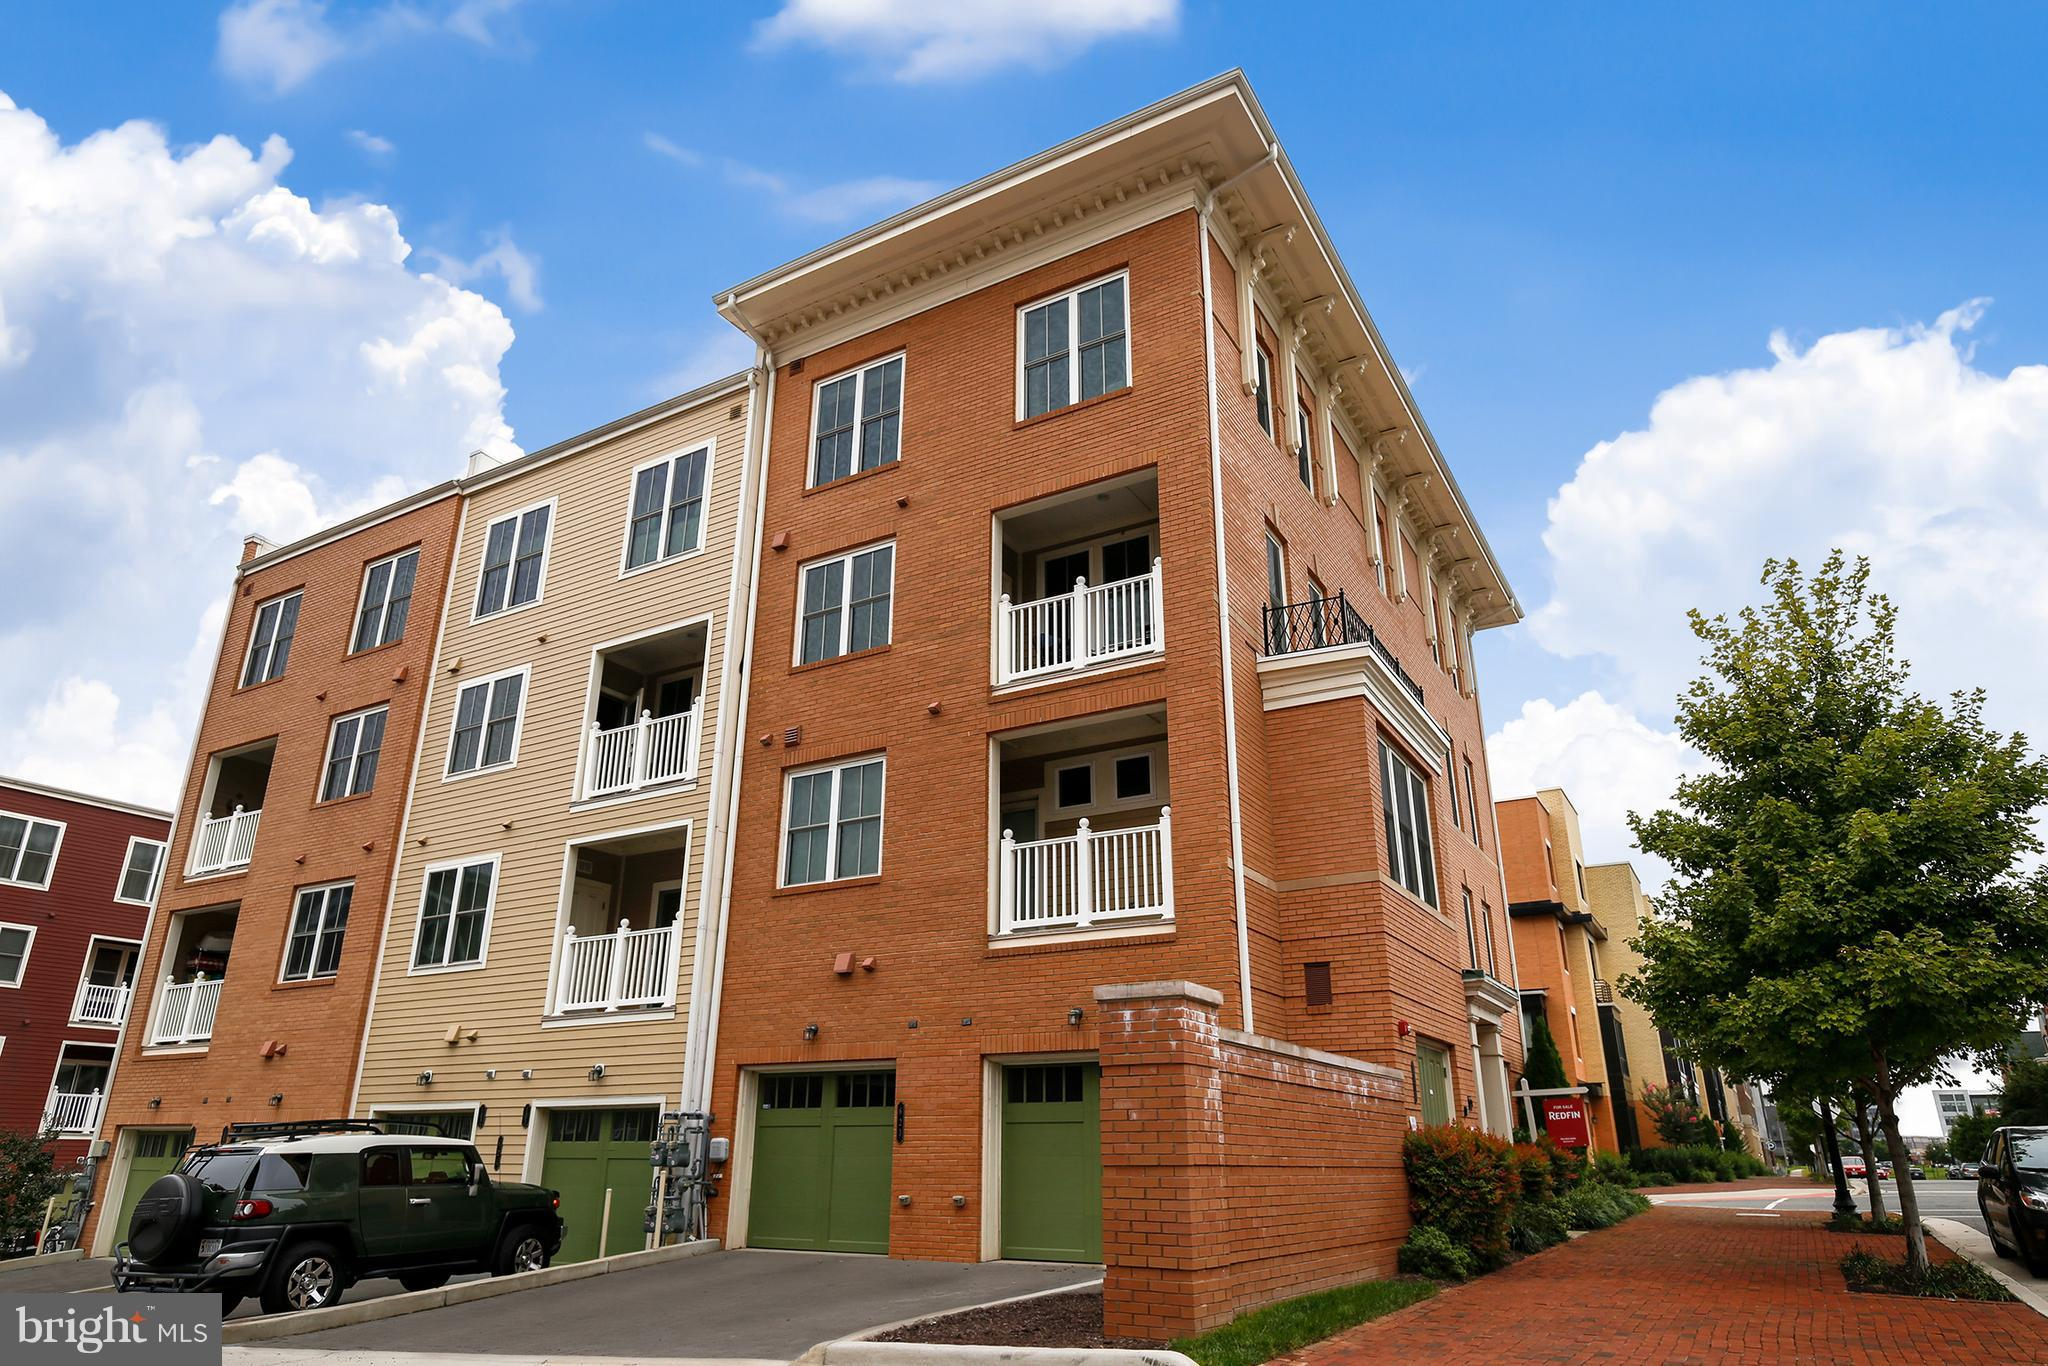 3 Bed townhome with open floor plan and an abundant amount of natural lighting throughout. Features include large kitchen which connects to dining area, perfect for entertaining.  Attached car garage and easy access to DC, Old Town Alexandria & Reagan National Airport.